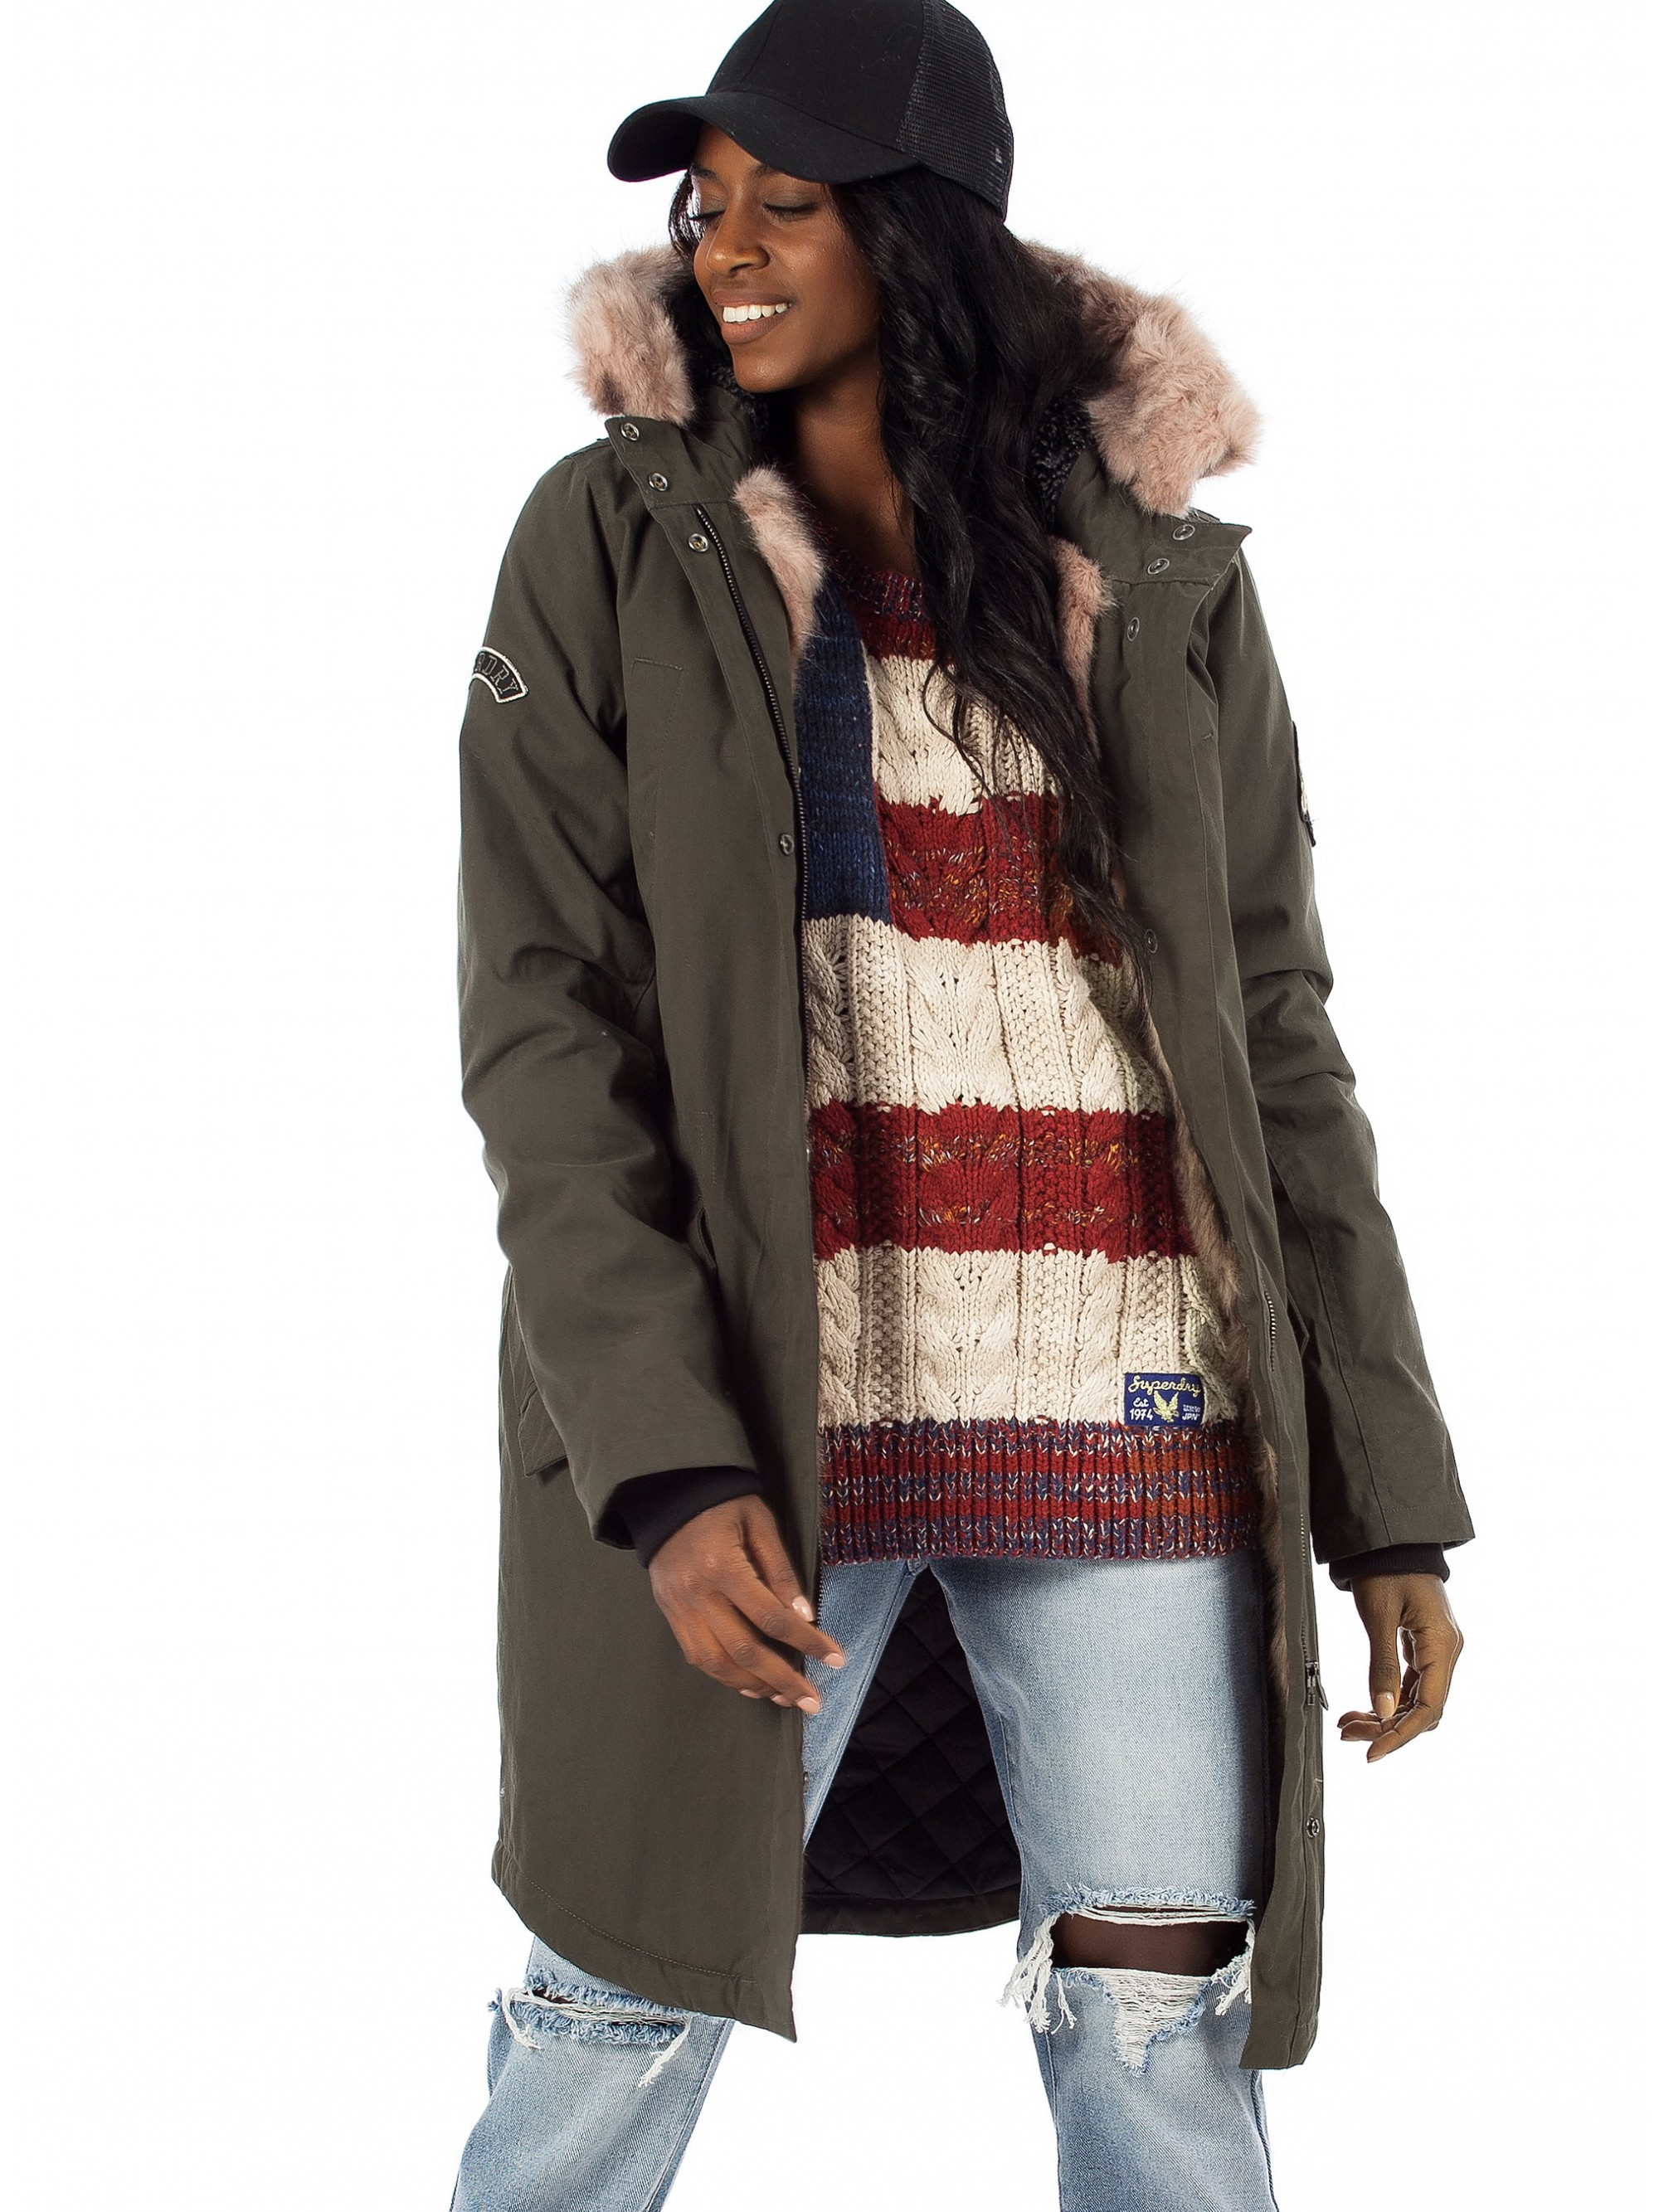 marketable hot sales yet not vulgar Superdry Frankie Faux Fur Line Parka-Olive - Jackets & Coats - Tops - Women